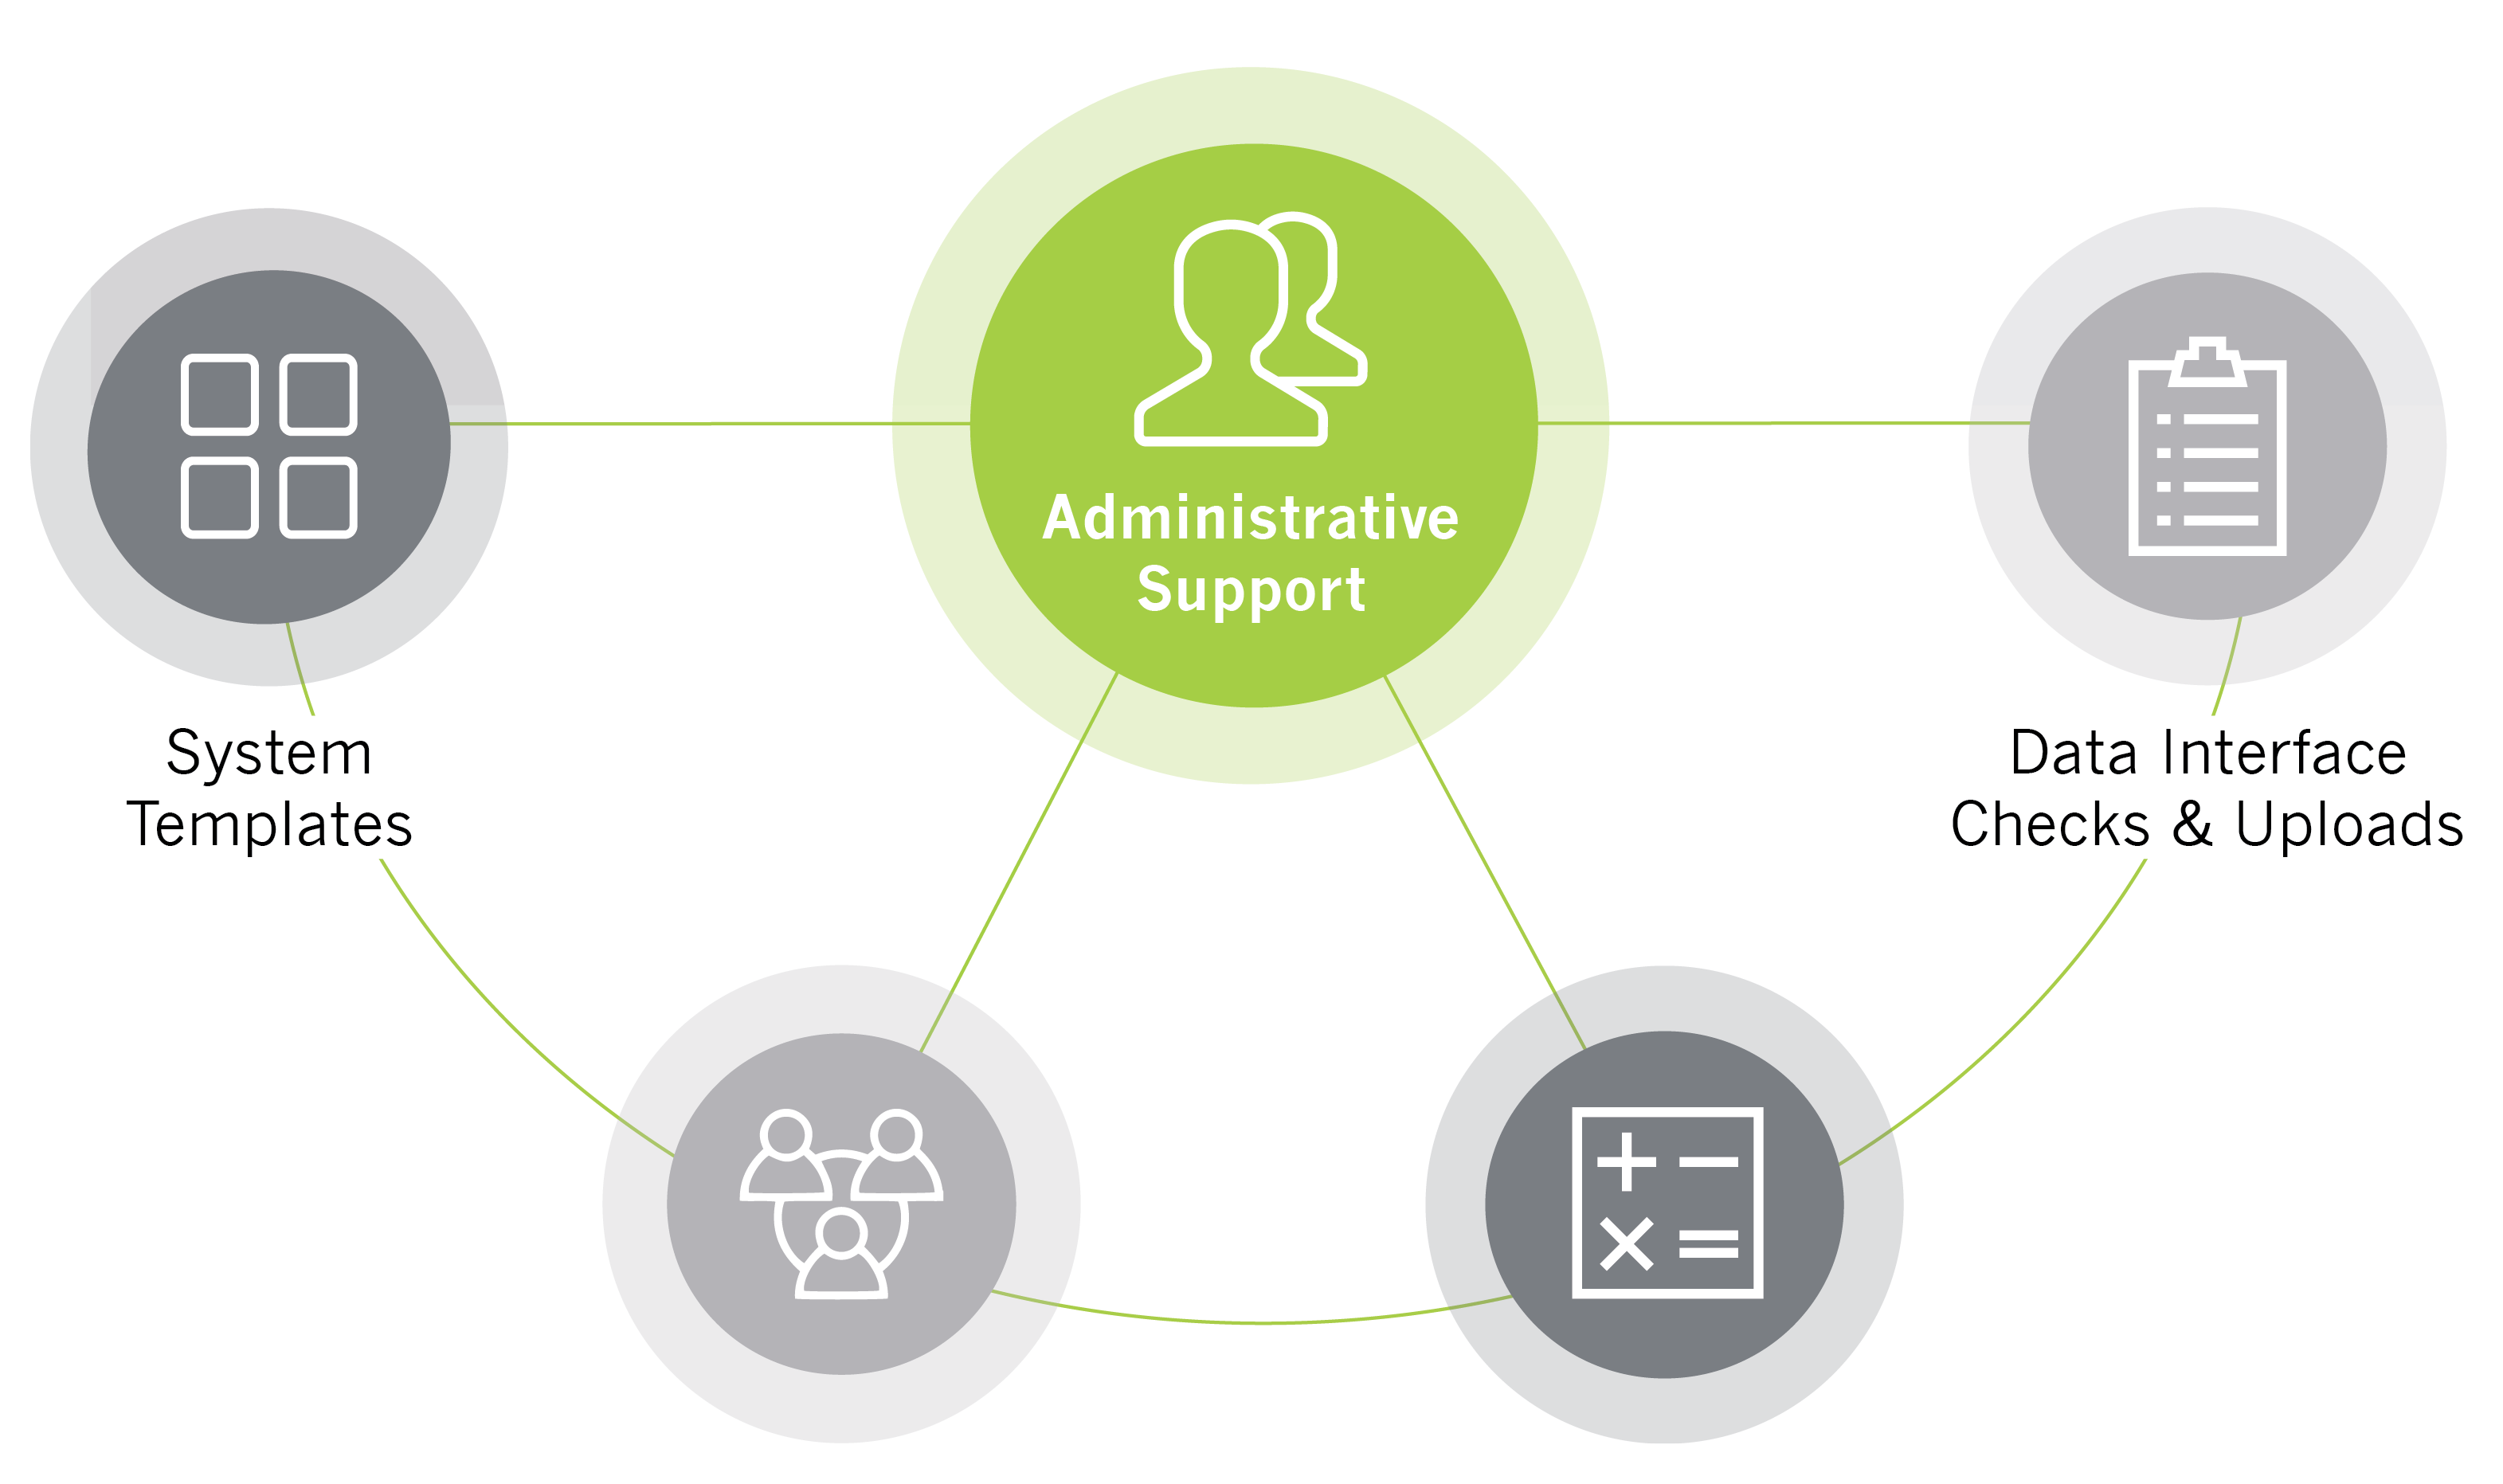 Sustainment Administrative Support System Templates Data Interface Checks and Uploads